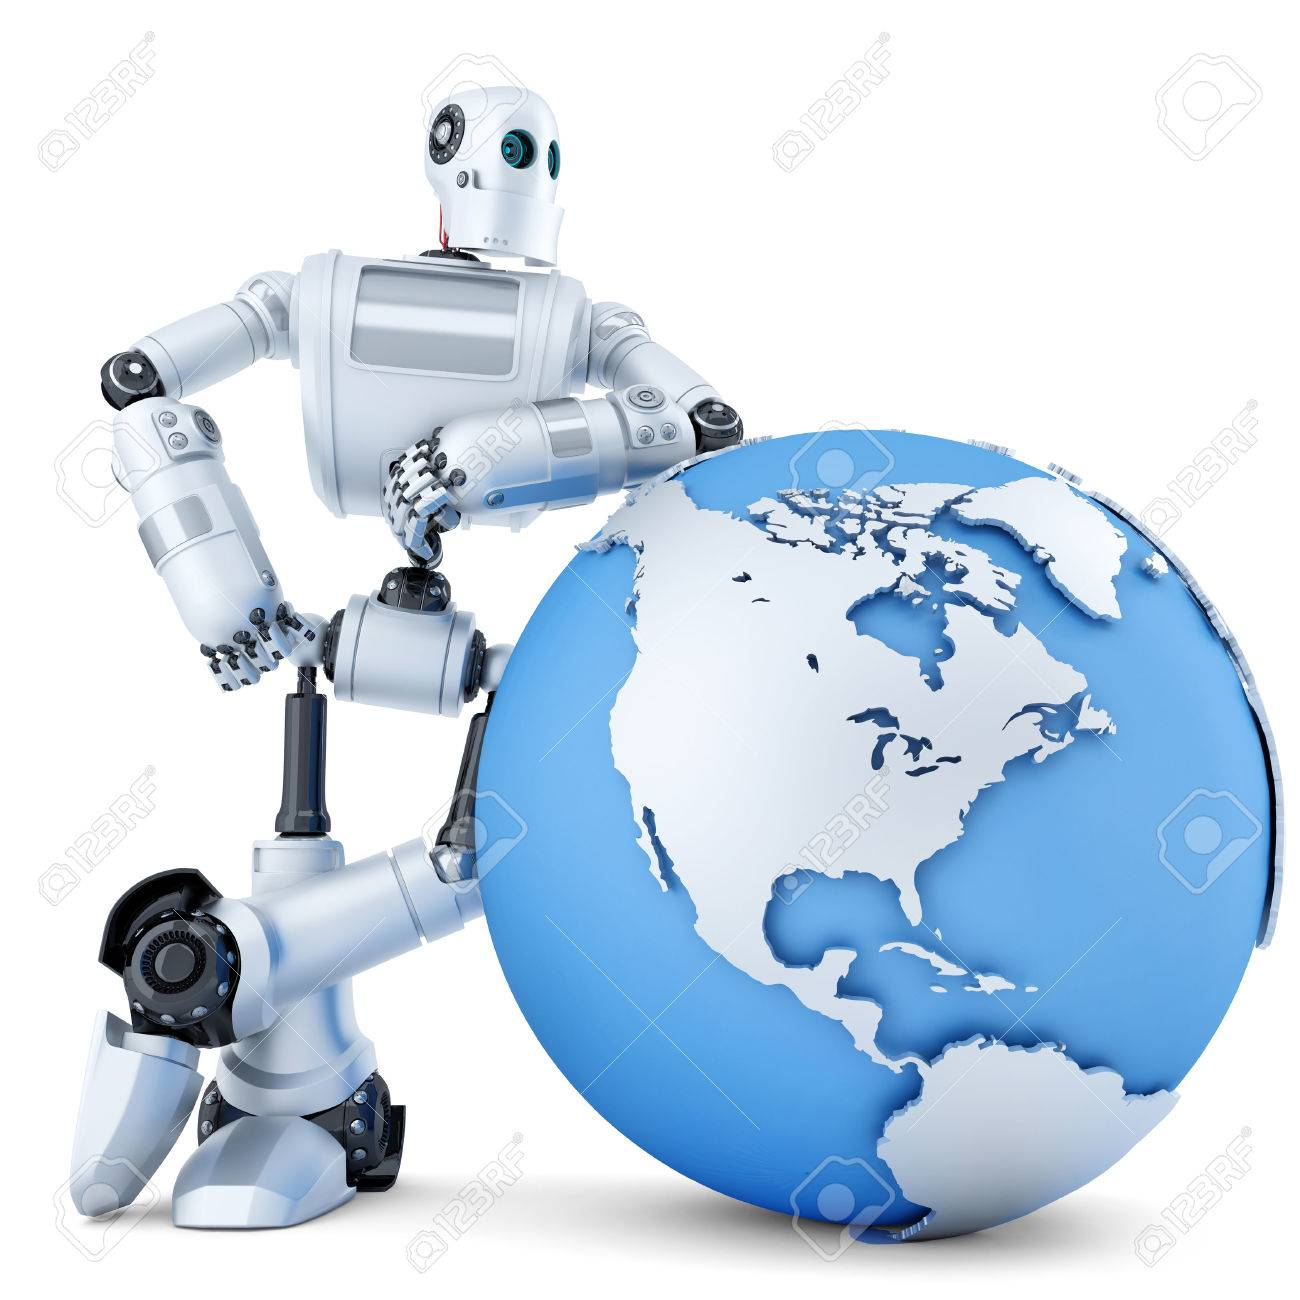 3D robot standing with globe. Technology concept. Isolated over white. Standard-Bild - 43215977